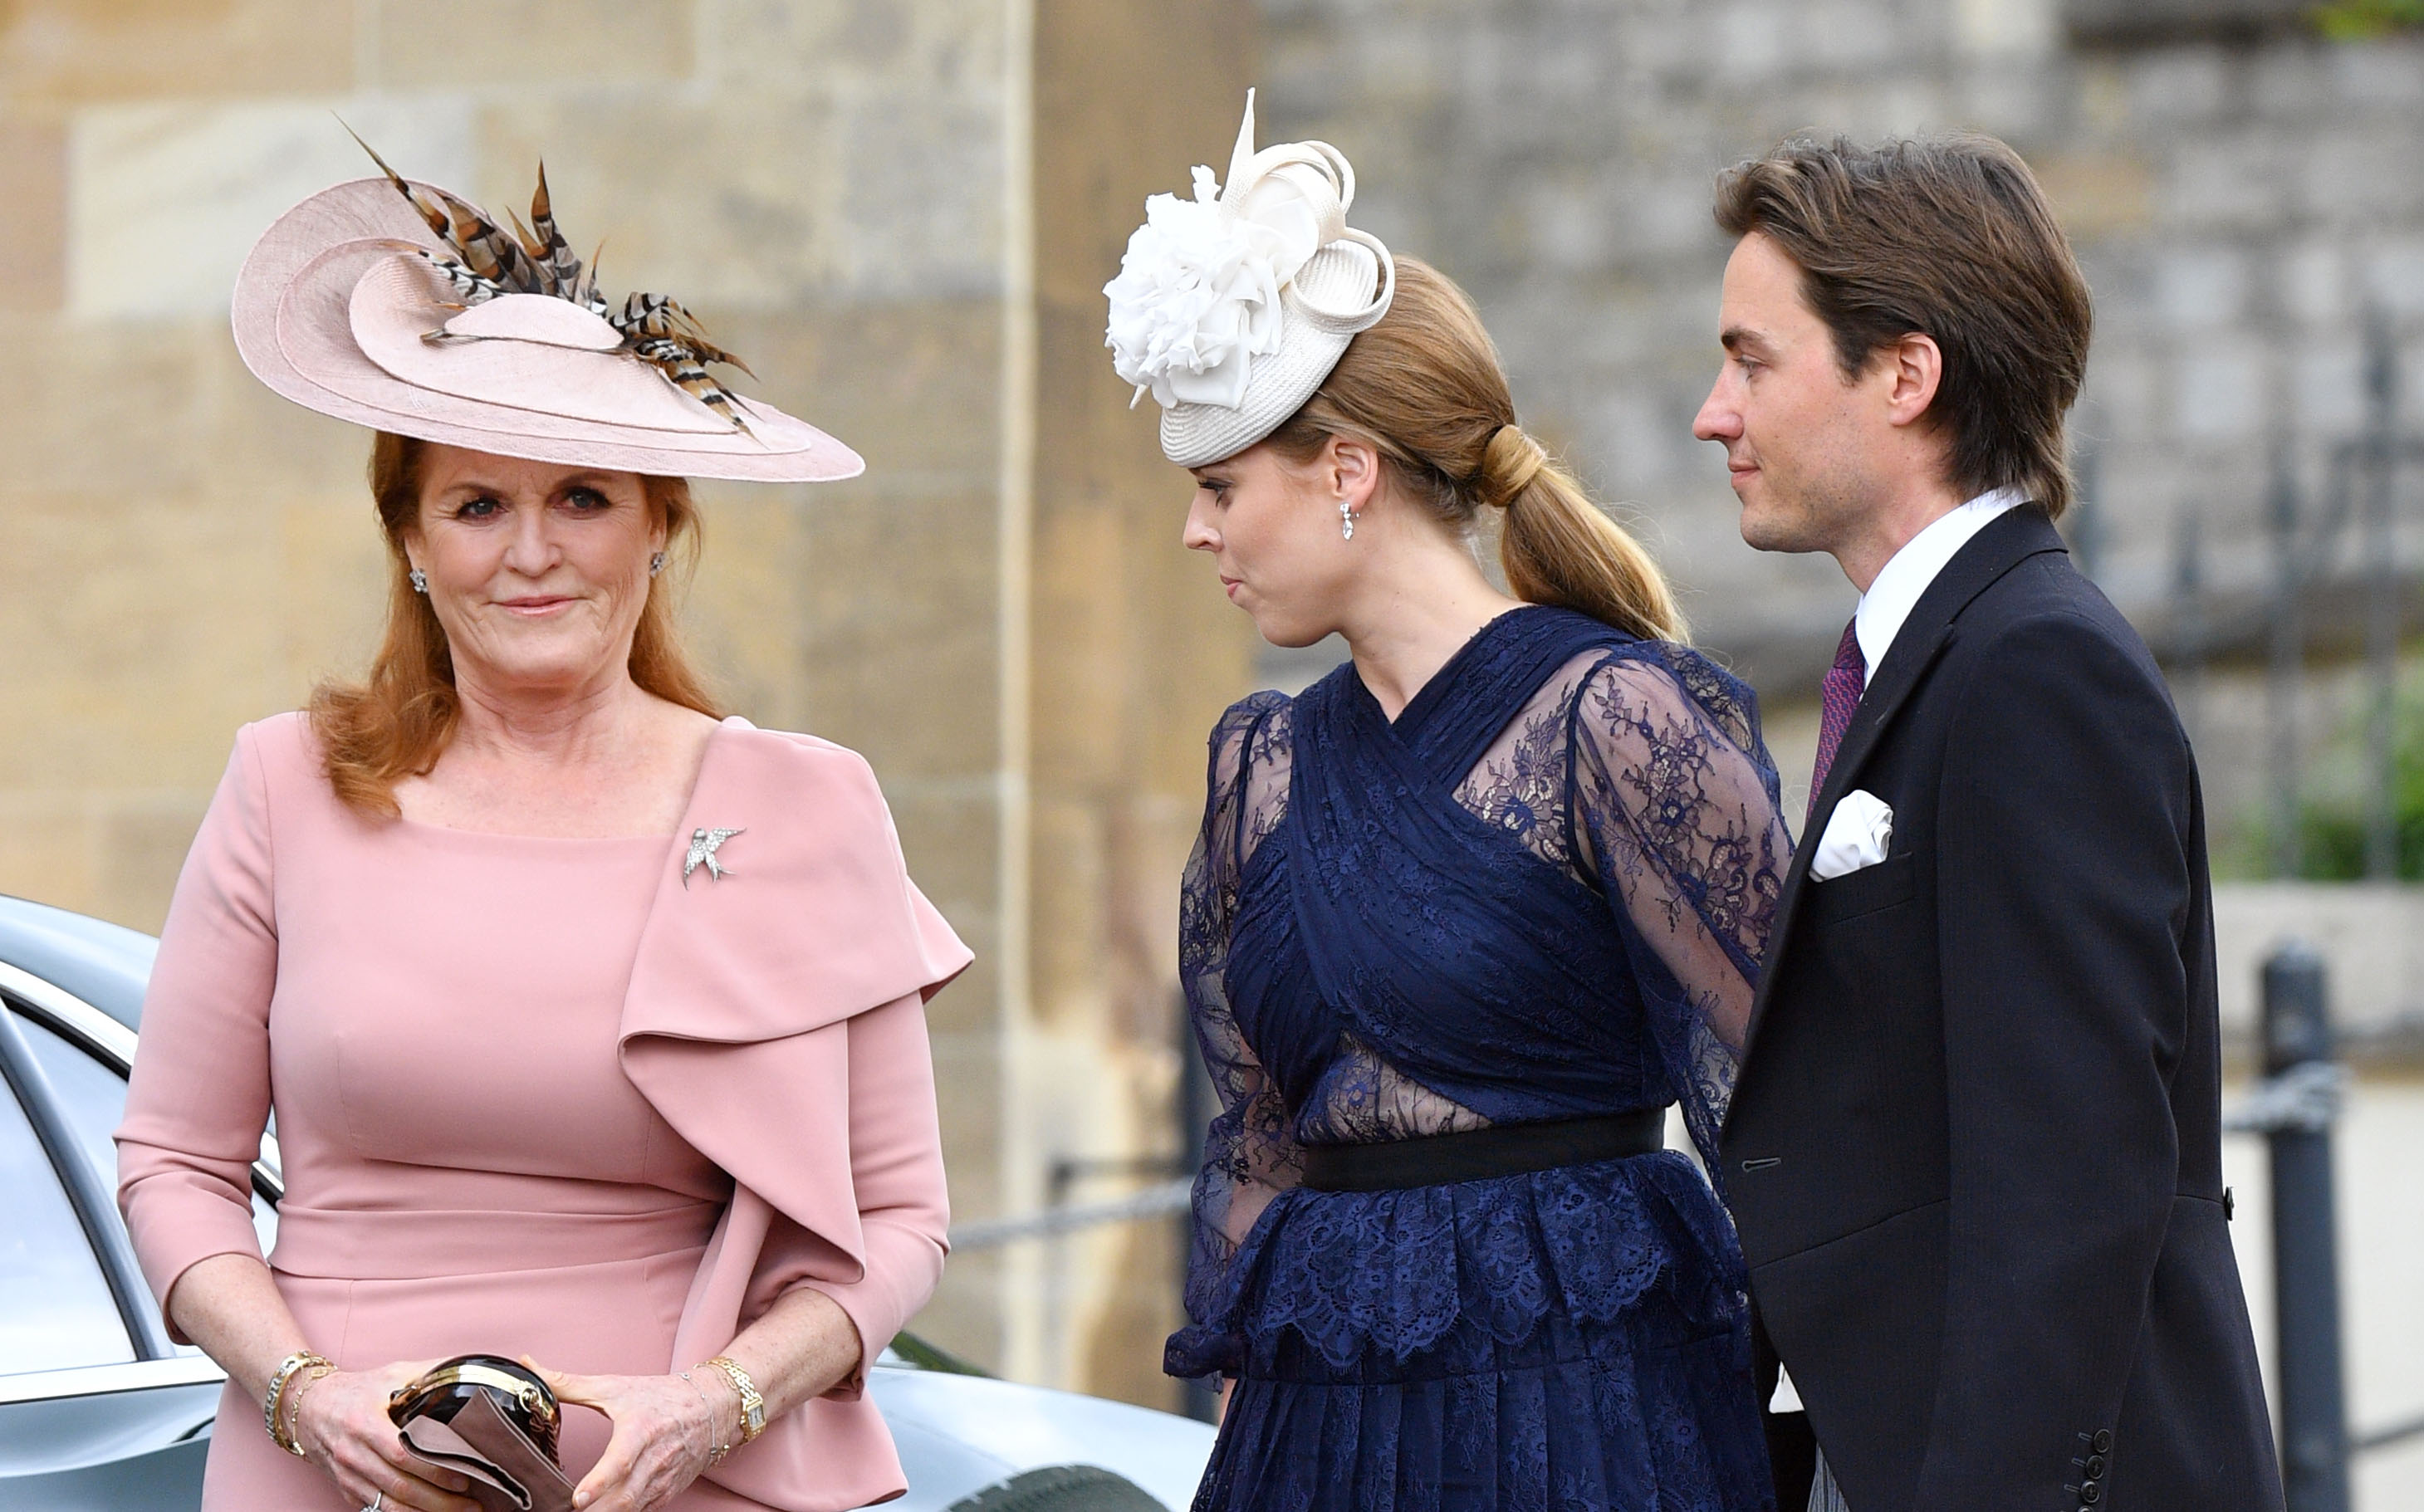 WINDSOR, UNITED KINGDOM - MAY 18: (EMBARGOED FOR PUBLICATION IN UK NEWSPAPERS UNTIL 24 HOURS AFTER CREATE DATE AND TIME) Sarah Ferguson, Duchess of York, Princess Beatrice and Edoardo Mapelli Mozzi attend the wedding of Lady Gabriella Windsor and Thomas Kingston at St George's Chapel on May 18, 2019 in Windsor, England. (Photo by Pool/Max Mumby/Getty Images)